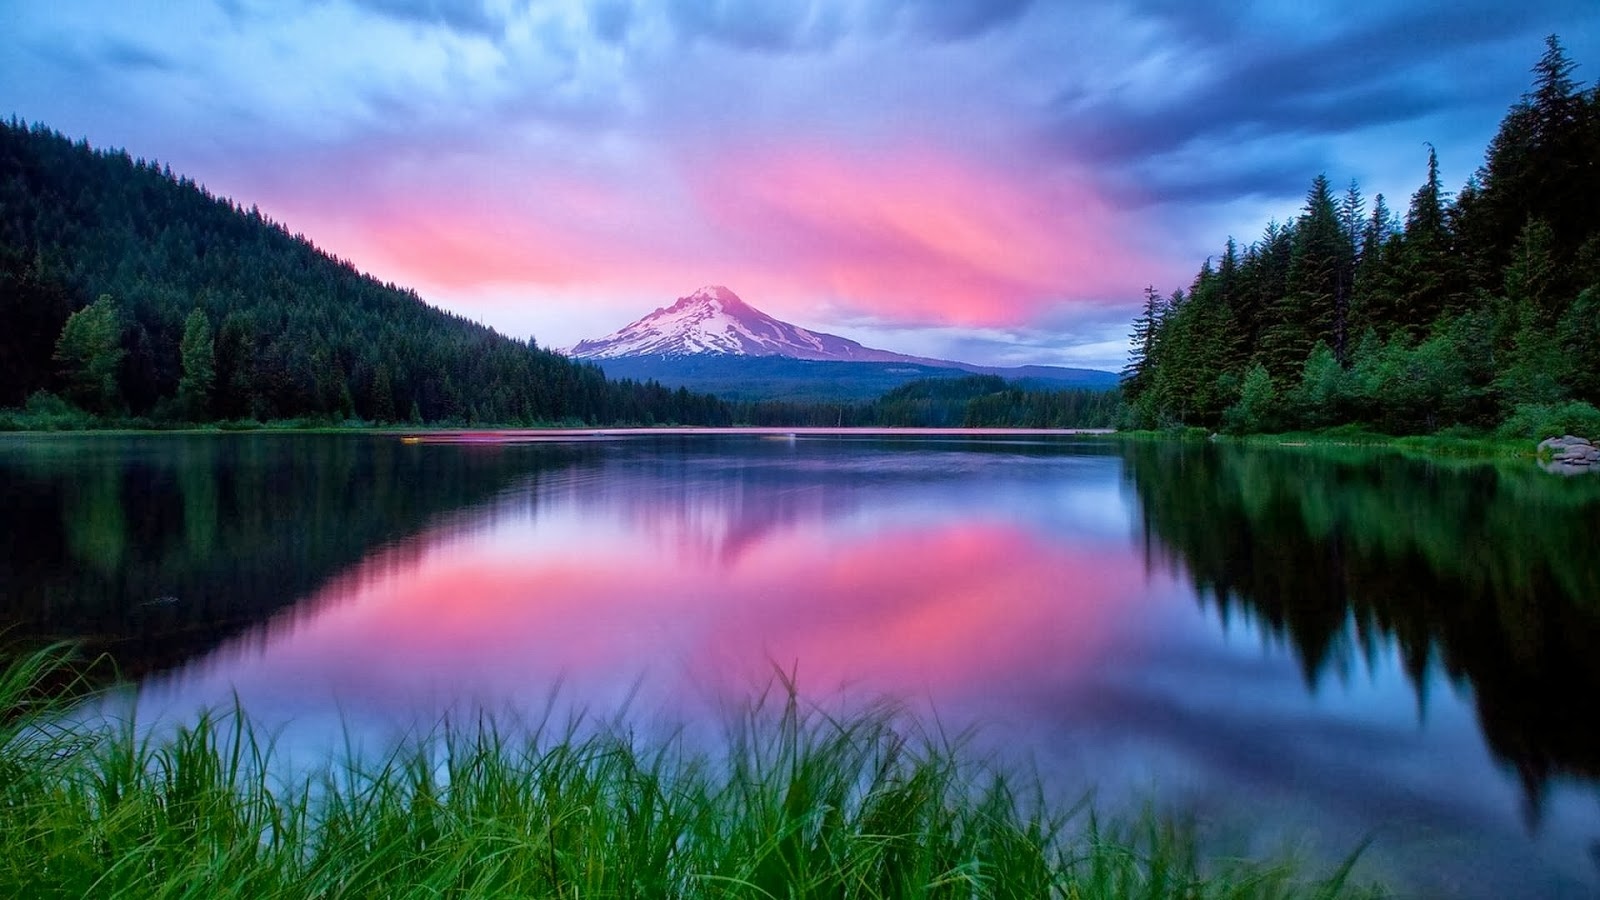 full hd nature wallpapers download full hd nature wallpapers 1600x900